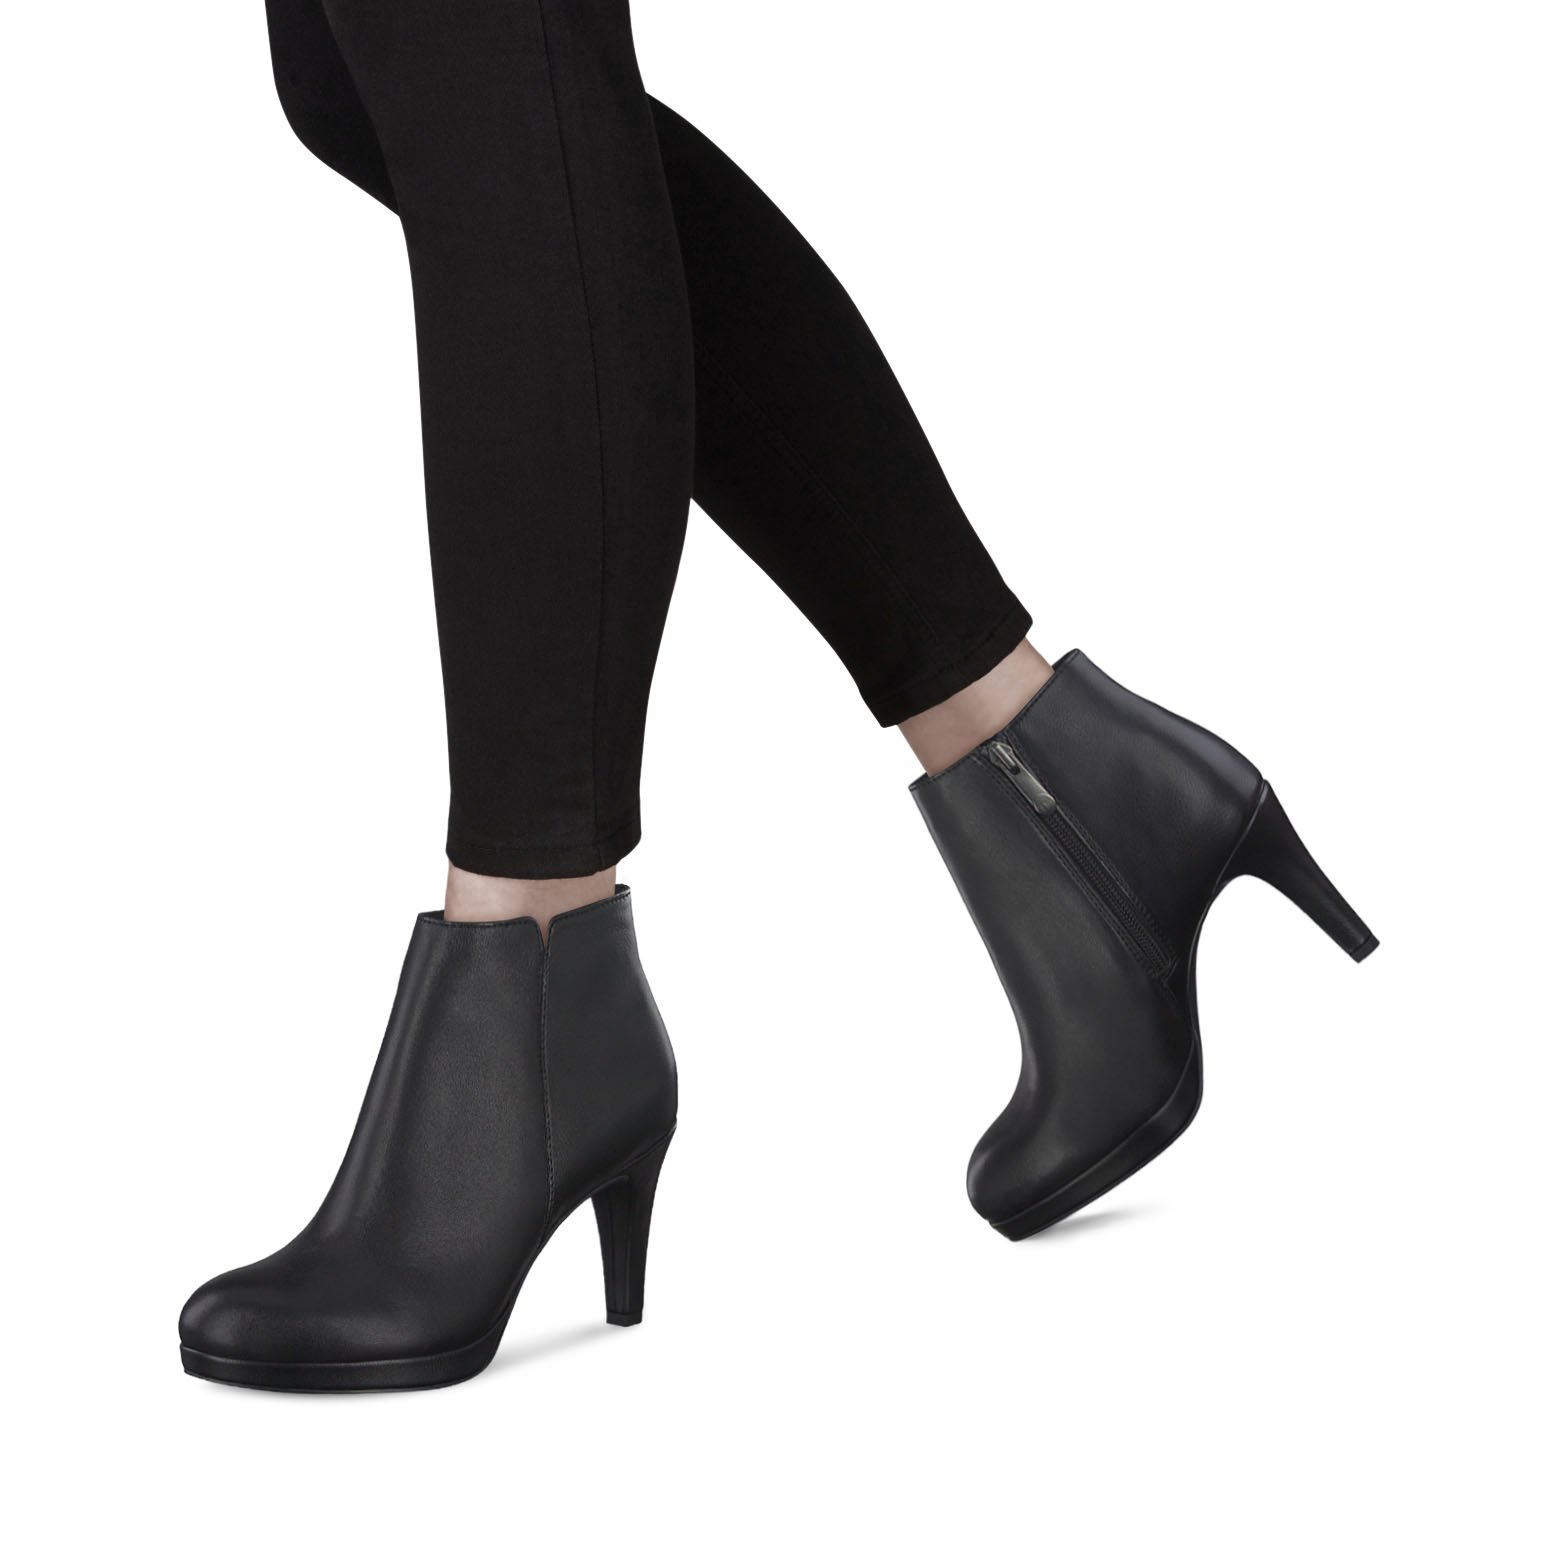 Lederstiefelette - schwarz, BLACK ANTIC, hi-res